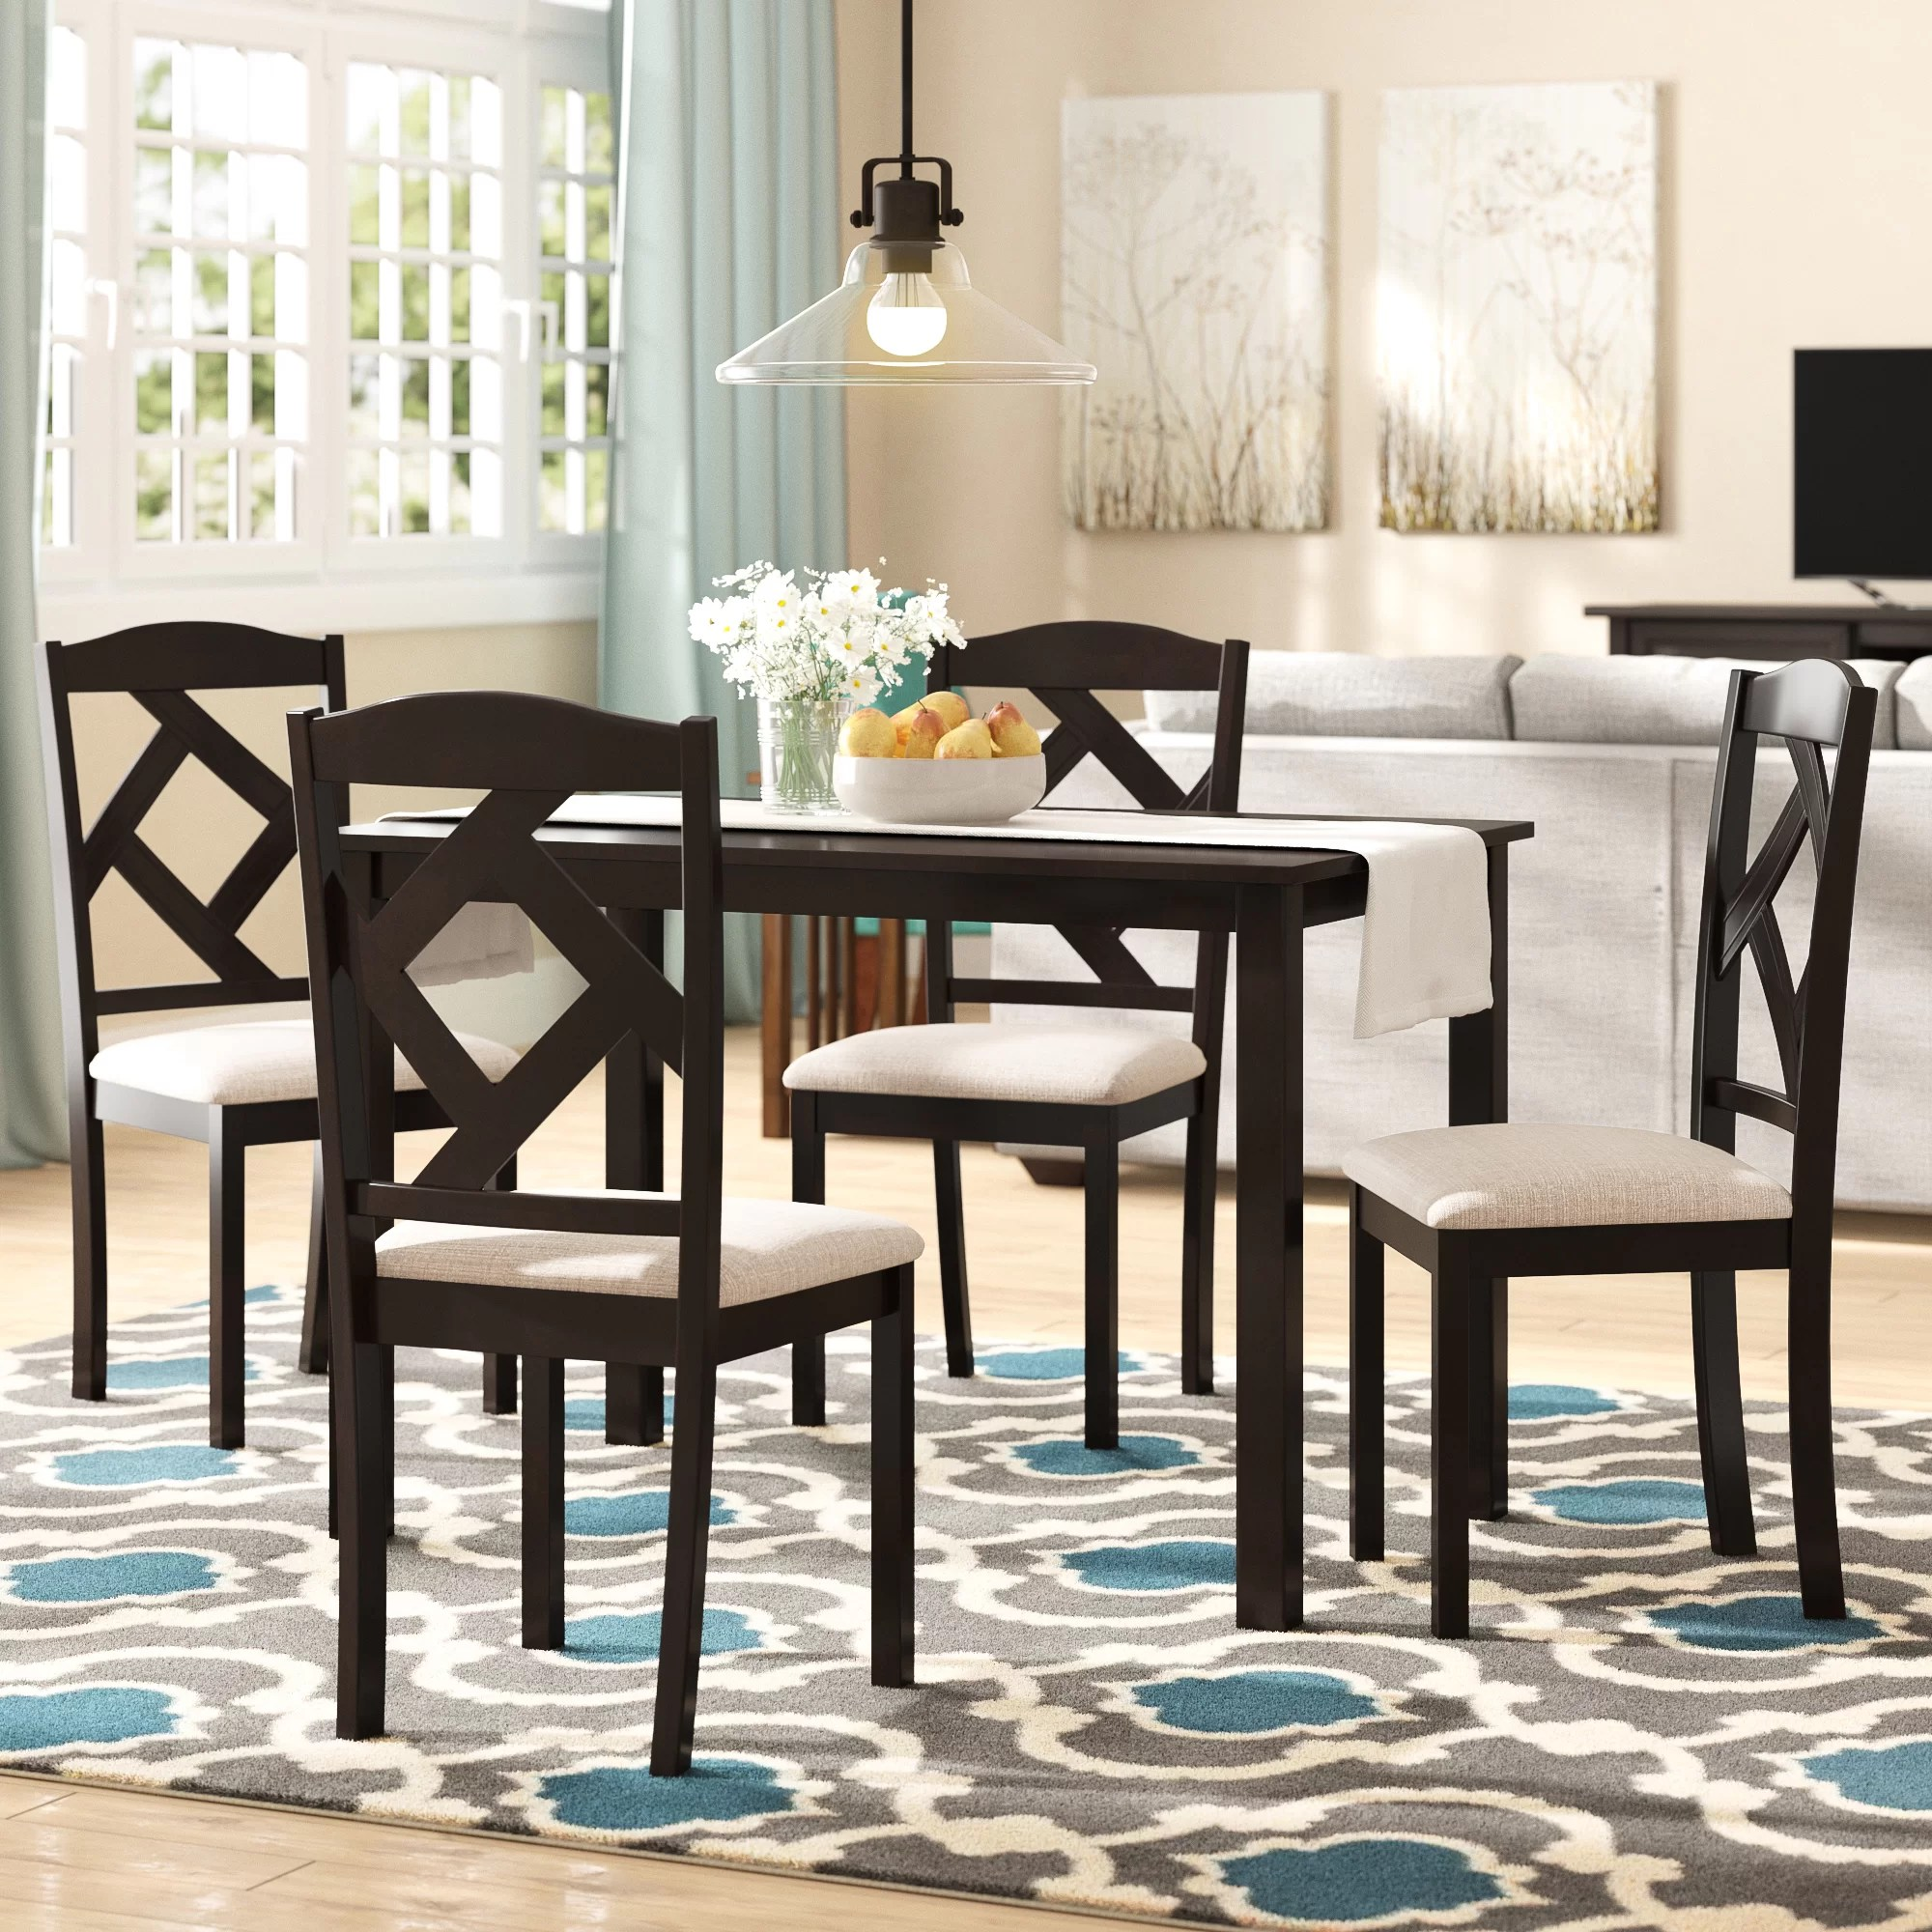 Modern Dining Set Goosman Modern And Contemporary 5 Piece Breakfast Nook Dining Set